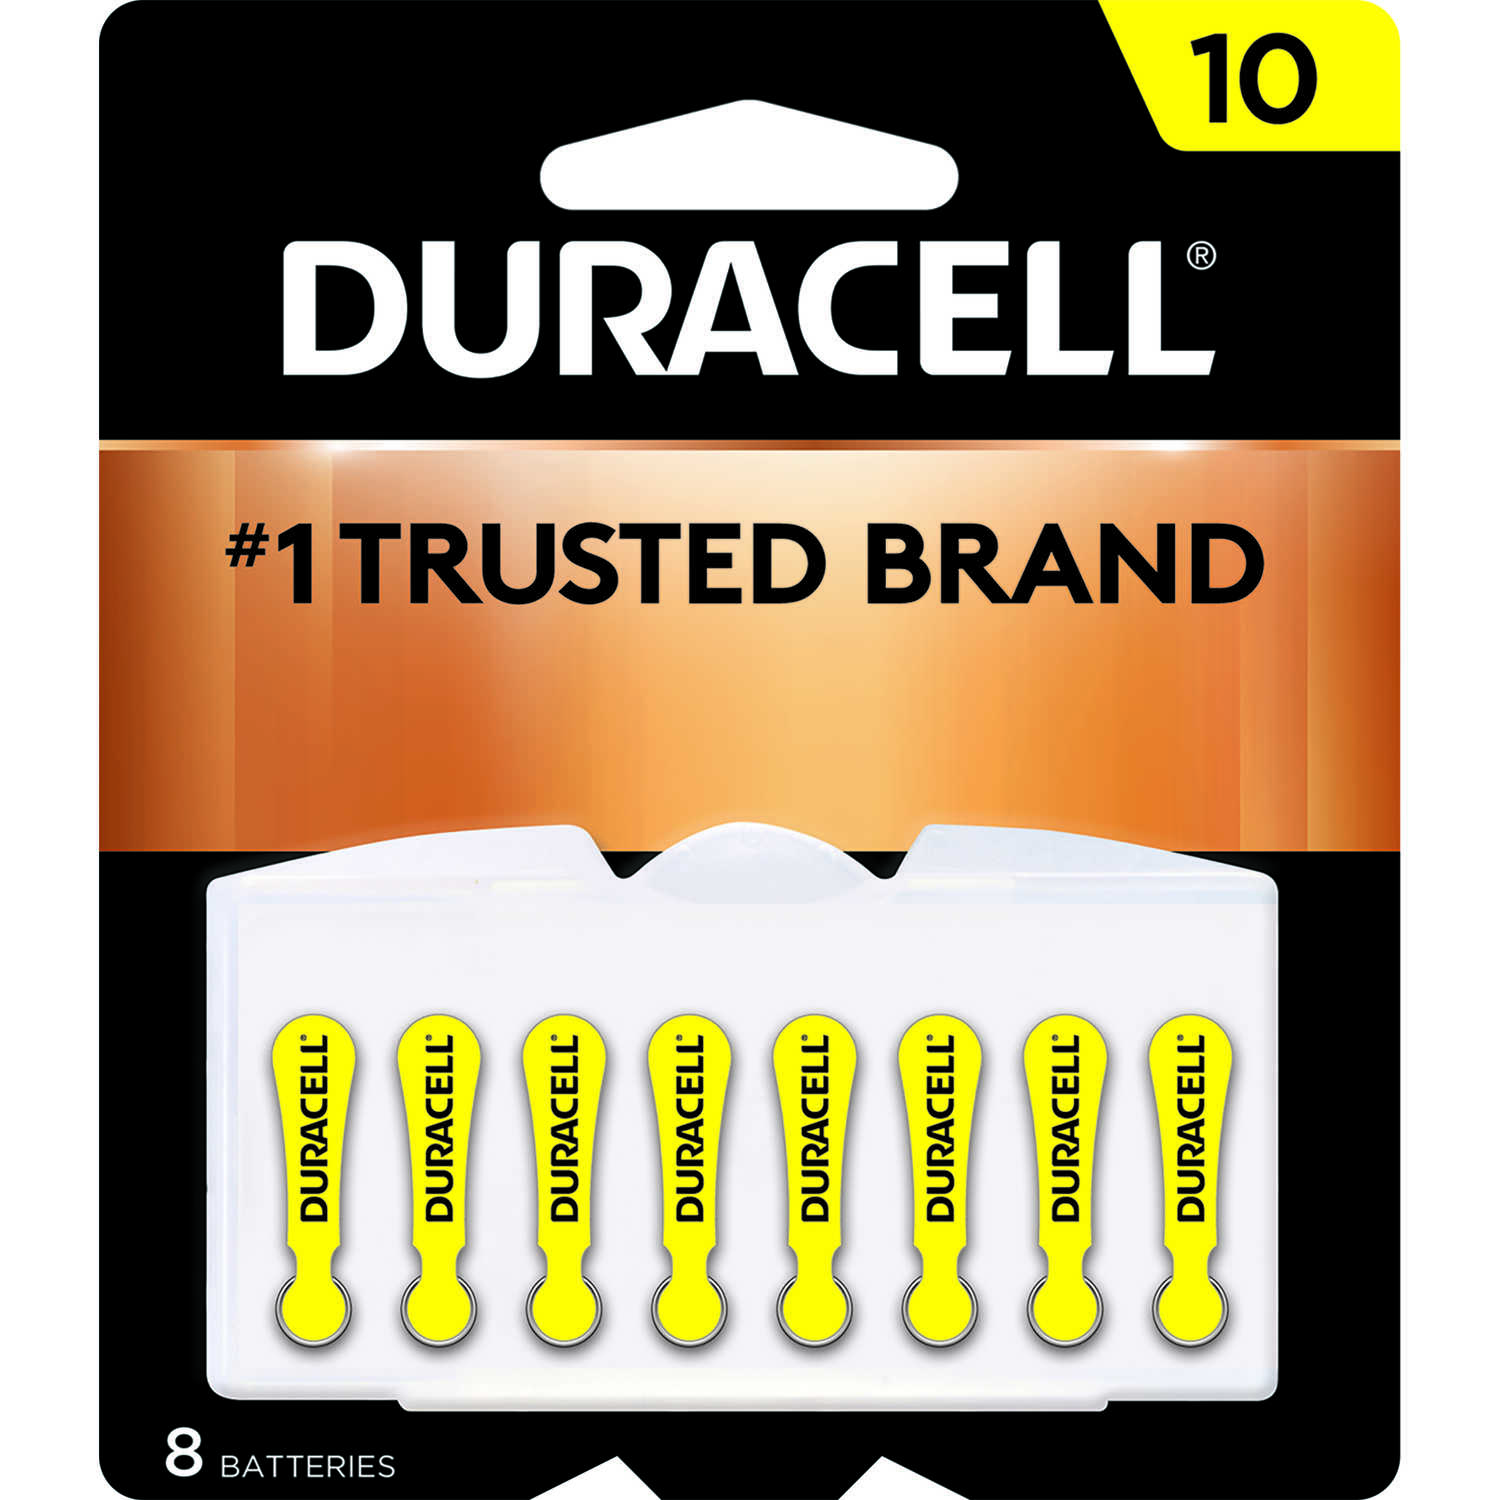 Duracell  Zinc Air  10  1.4 volt Hearing Aid Battery  8 pk